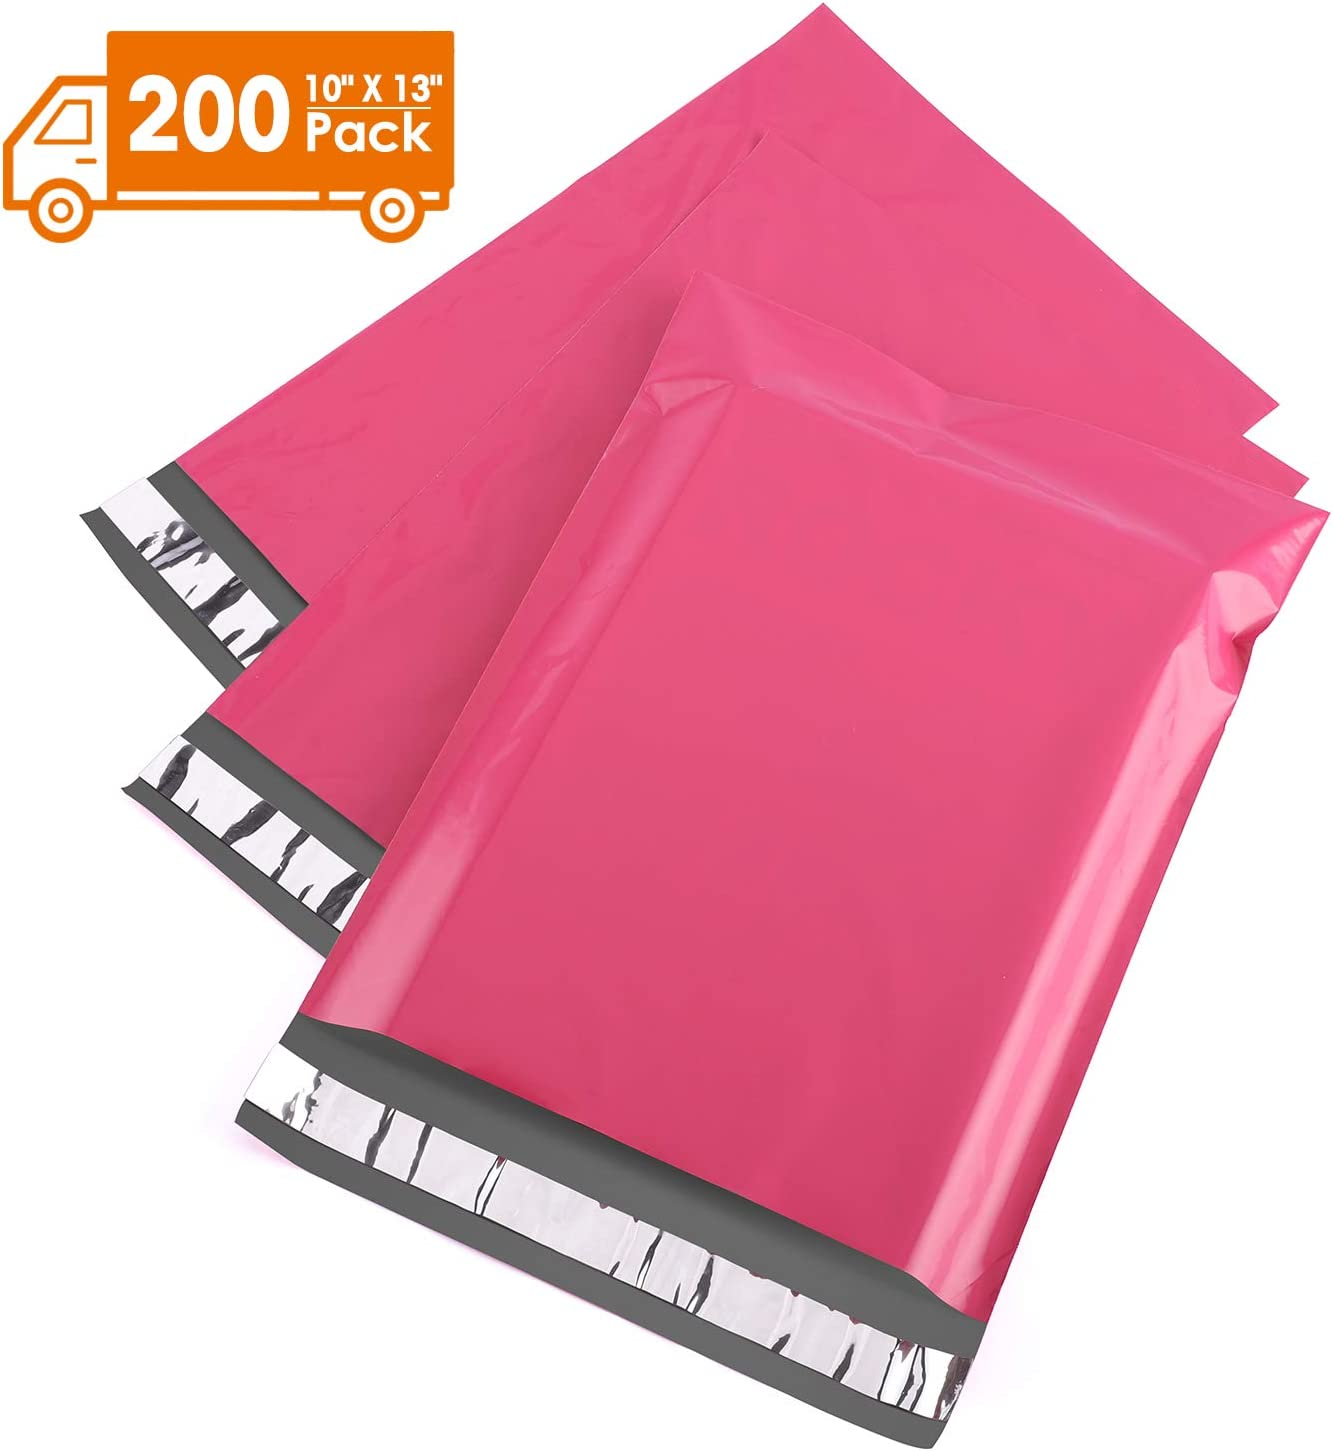 Metronic 10x13 Poly Mailers Purple Shipping Bags 100PC Envelopes Mailers with Self Adhesive Purple Poly Bags Waterproof and Tear-Proof Postal Bags : Office Products